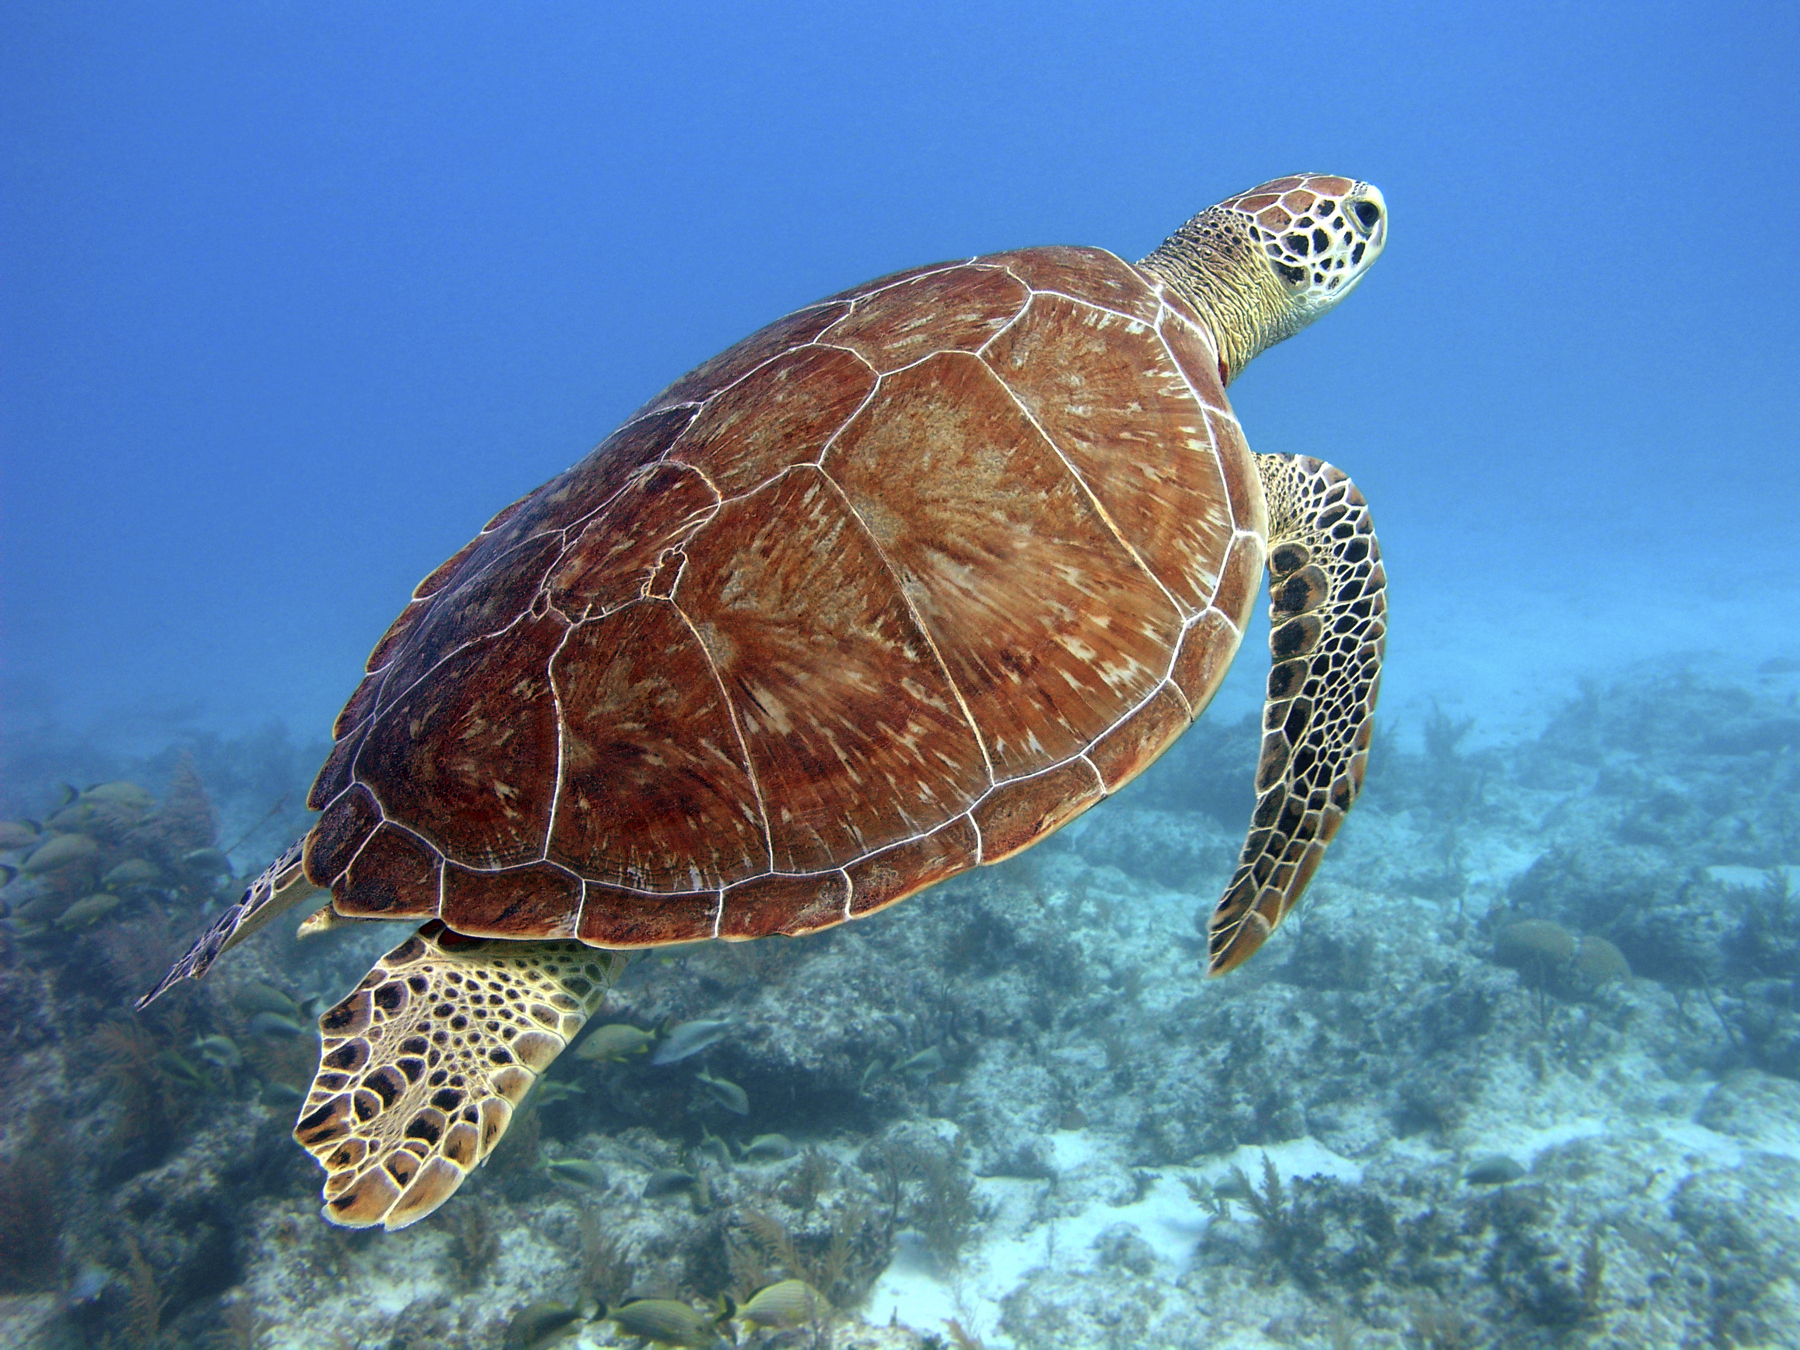 Sea turtle in the Florida Keys